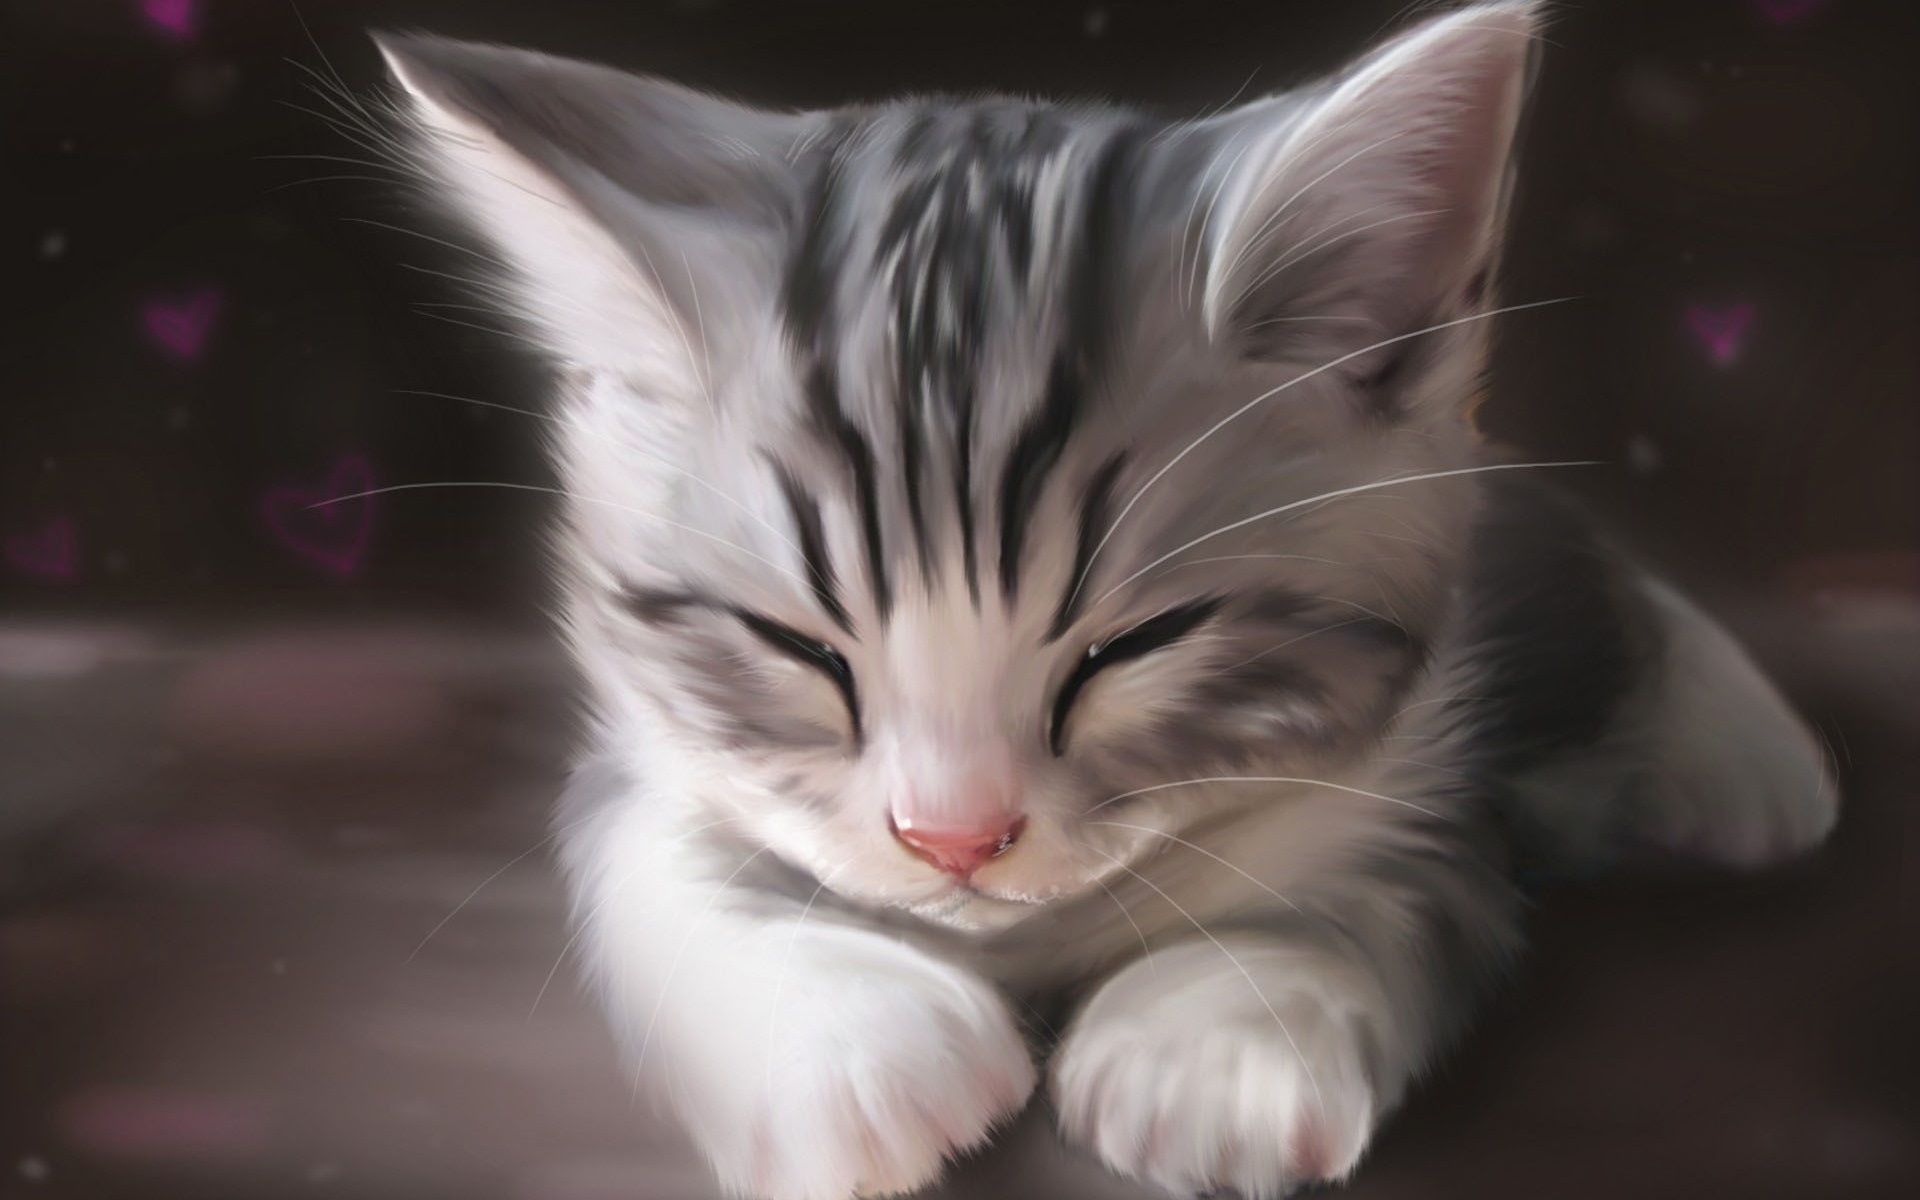 wallpaper art watercolor, cute cat sleeping 1920x1200 hd picture, image